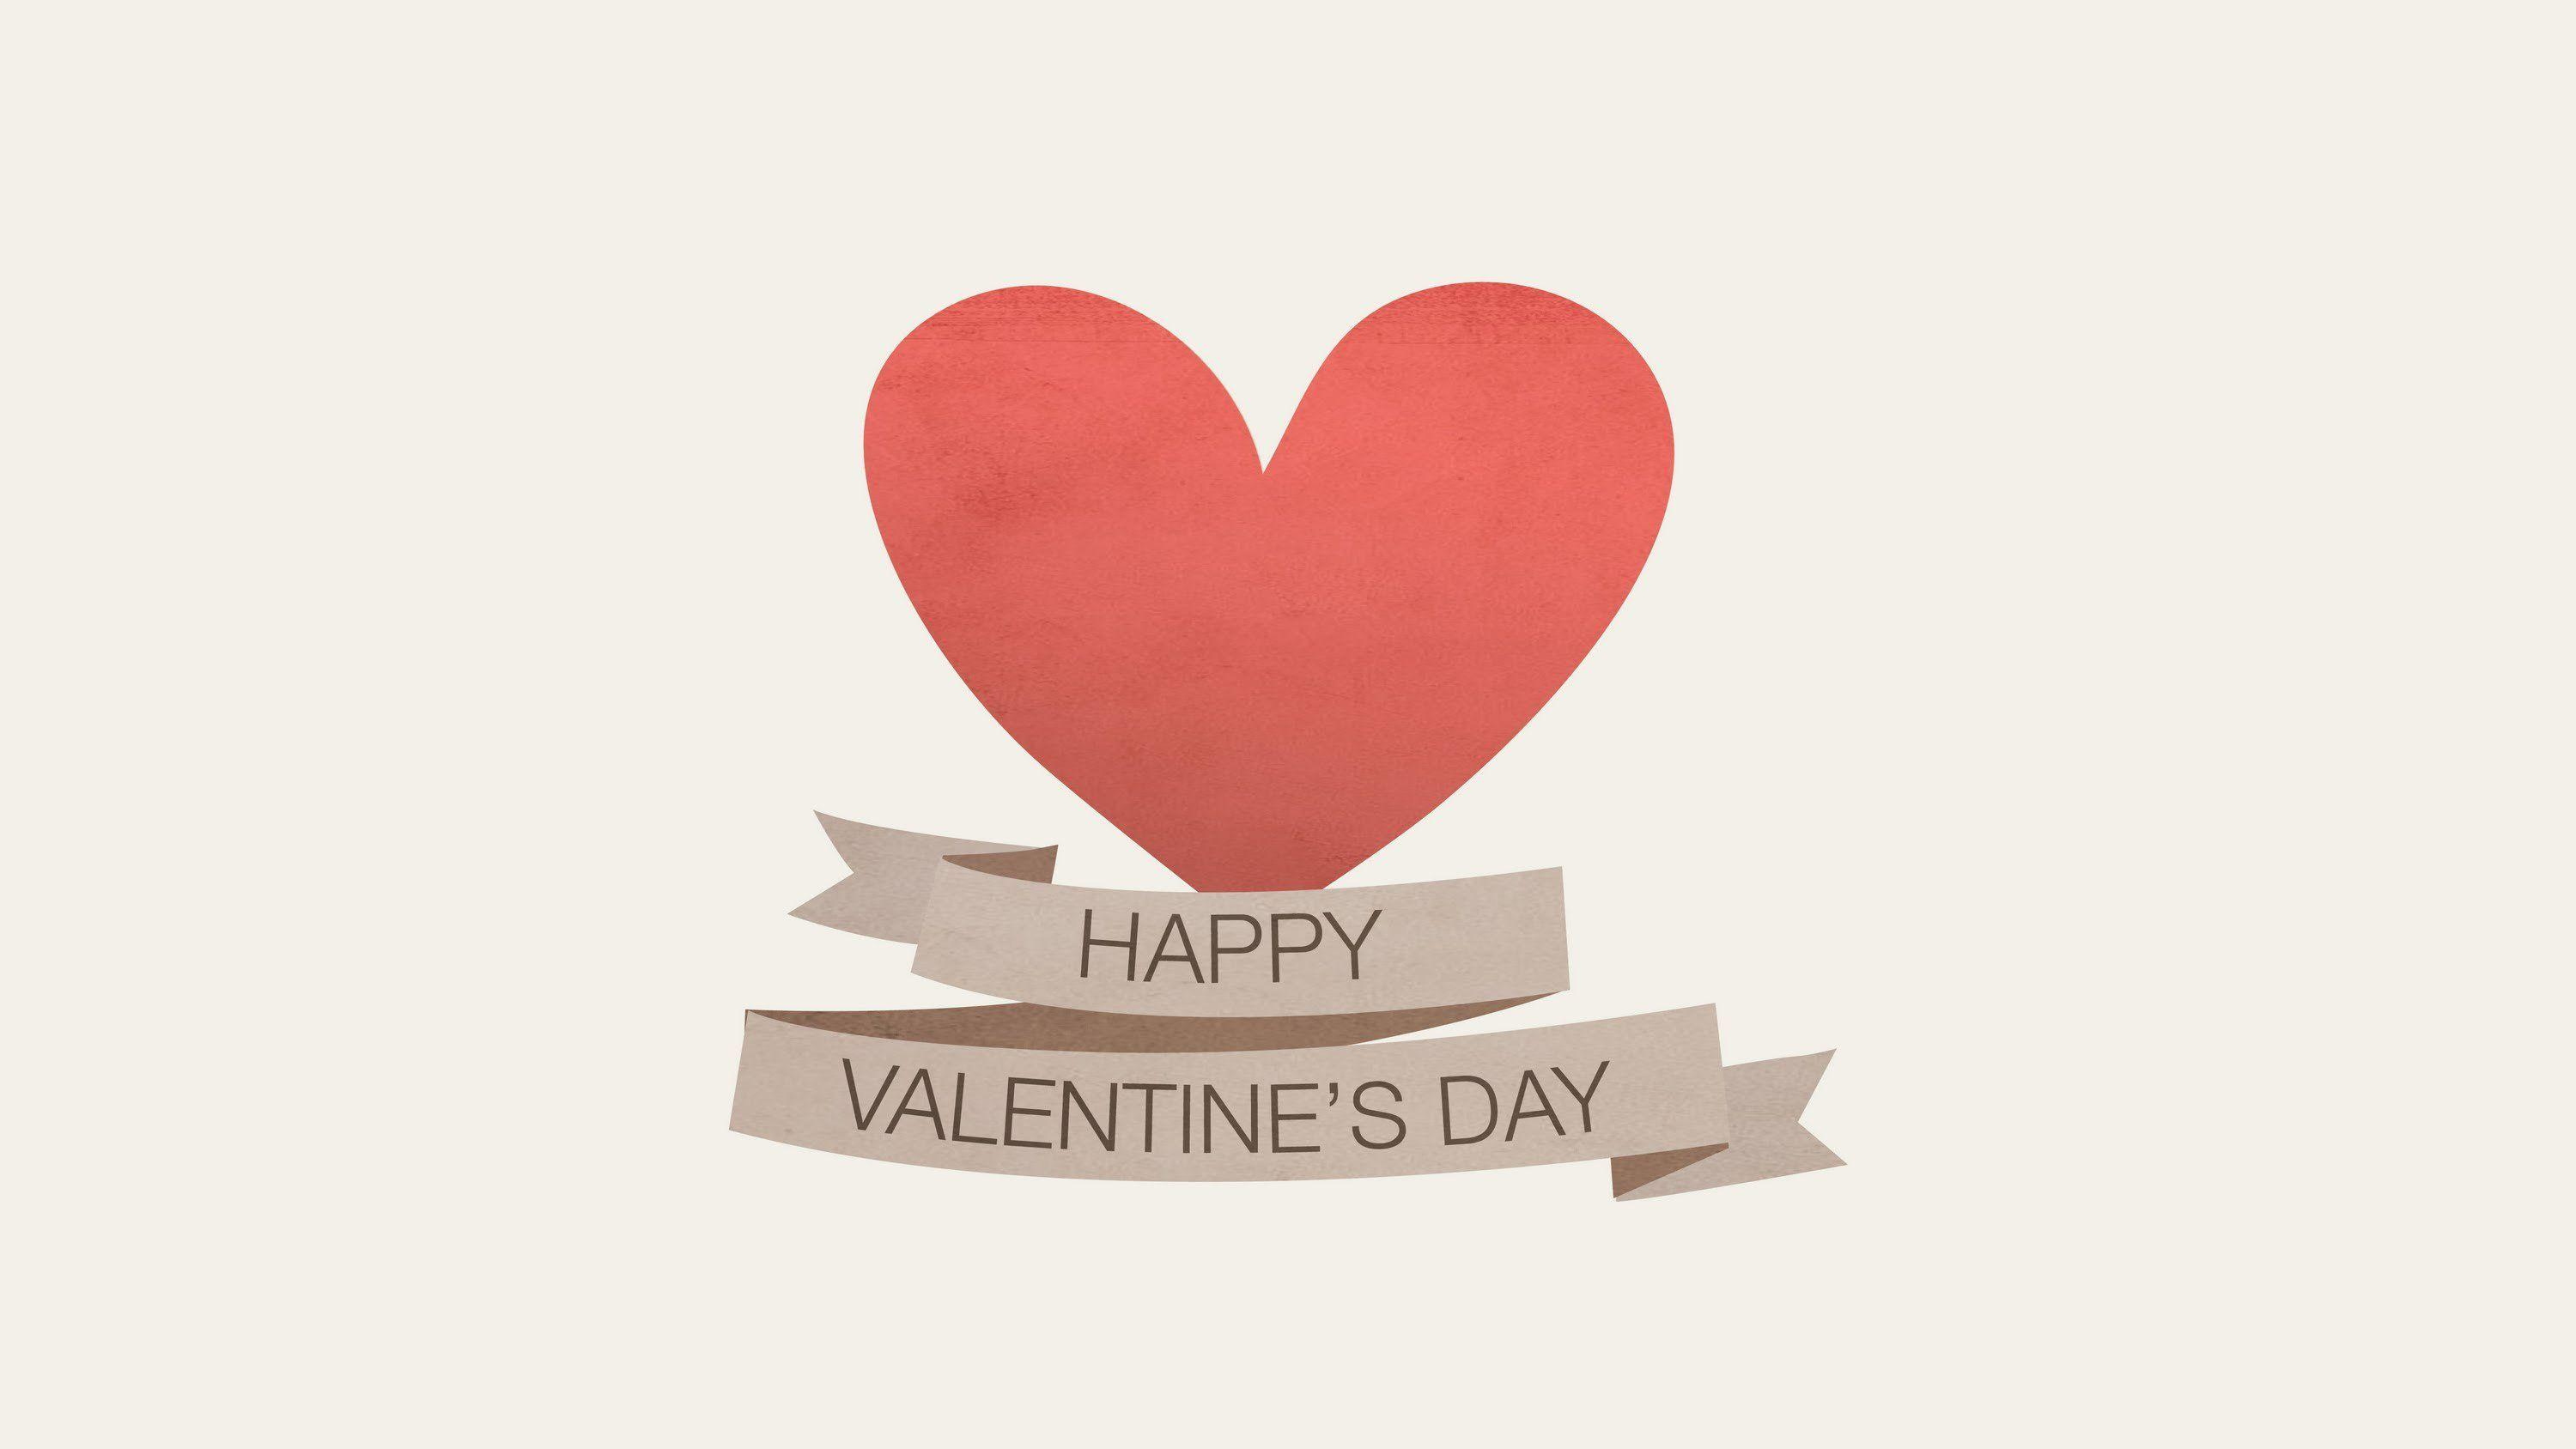 7 Happy Valentine's Day Images to Post on Facebook, Twitter ...